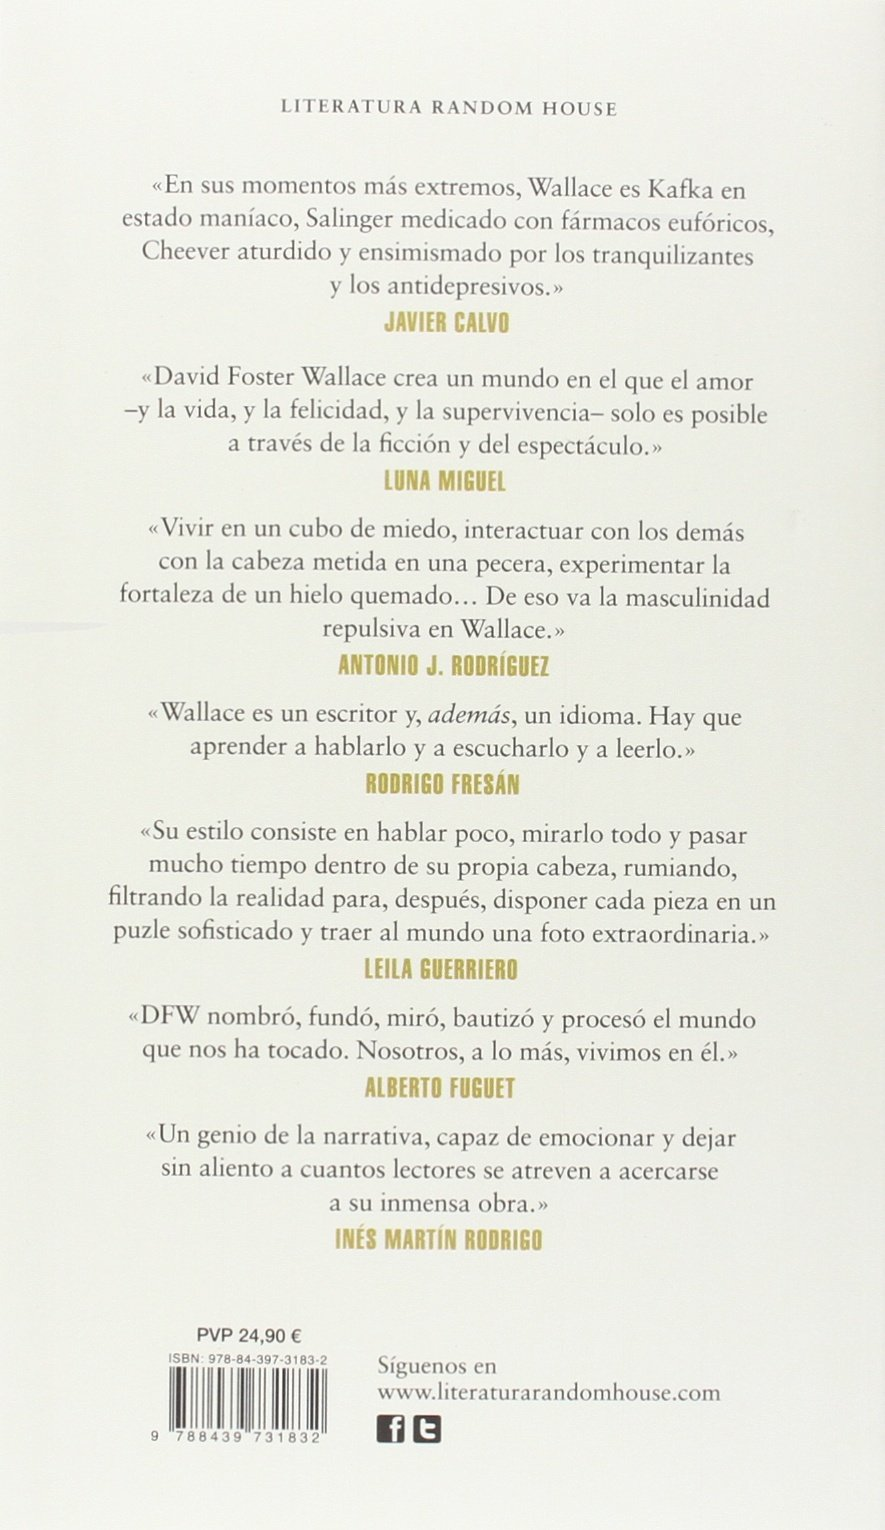 David Foster Wallace Portatil / Portable David Foster Wallace (Spanish Edition): David Foster Wallace: 9788439731832: Amazon.com: Books